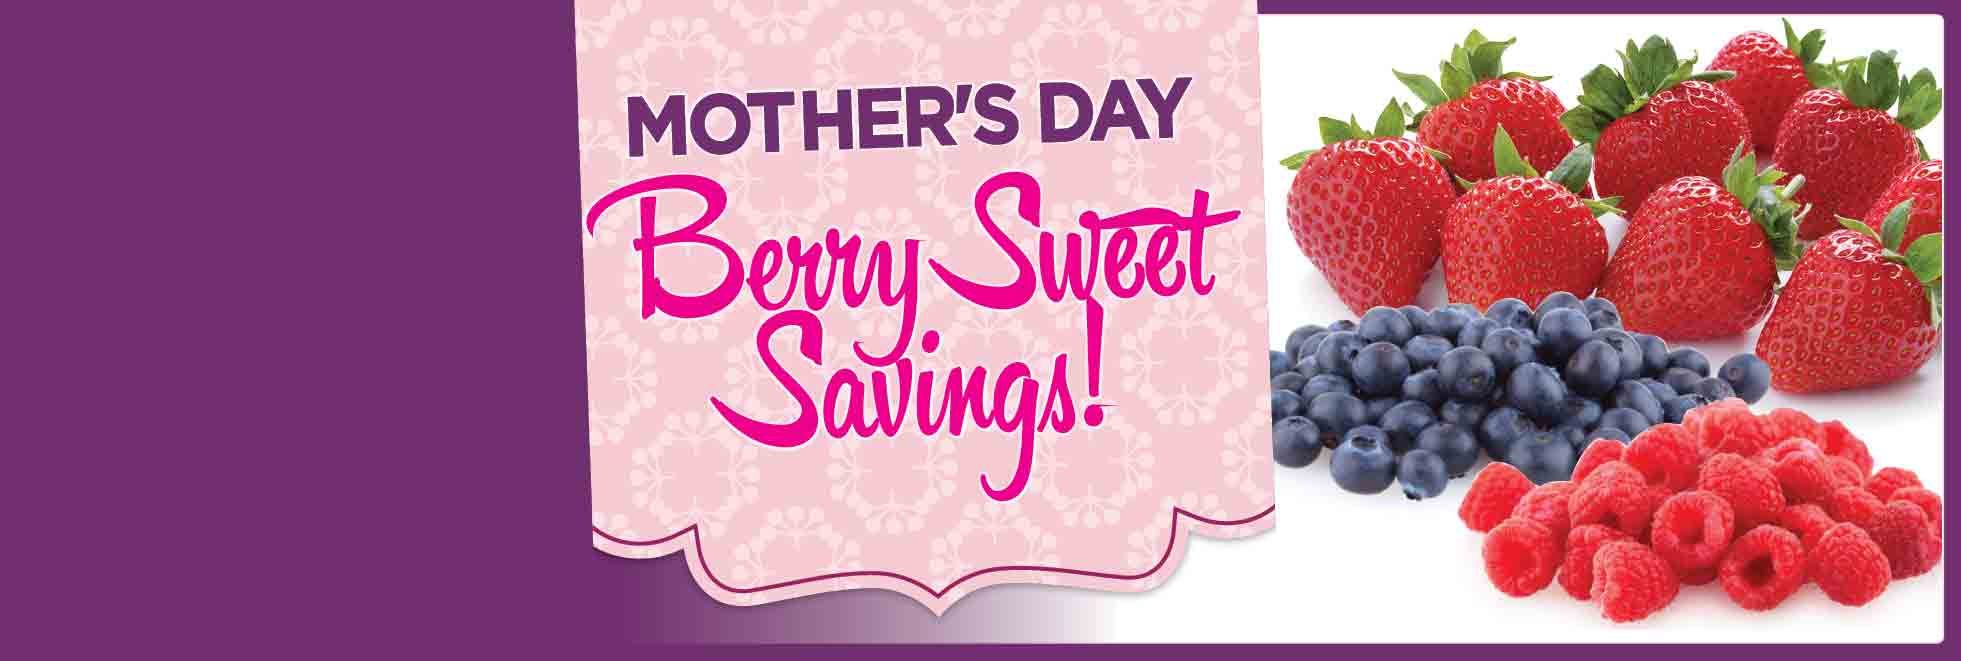 Sweet Berry Savings